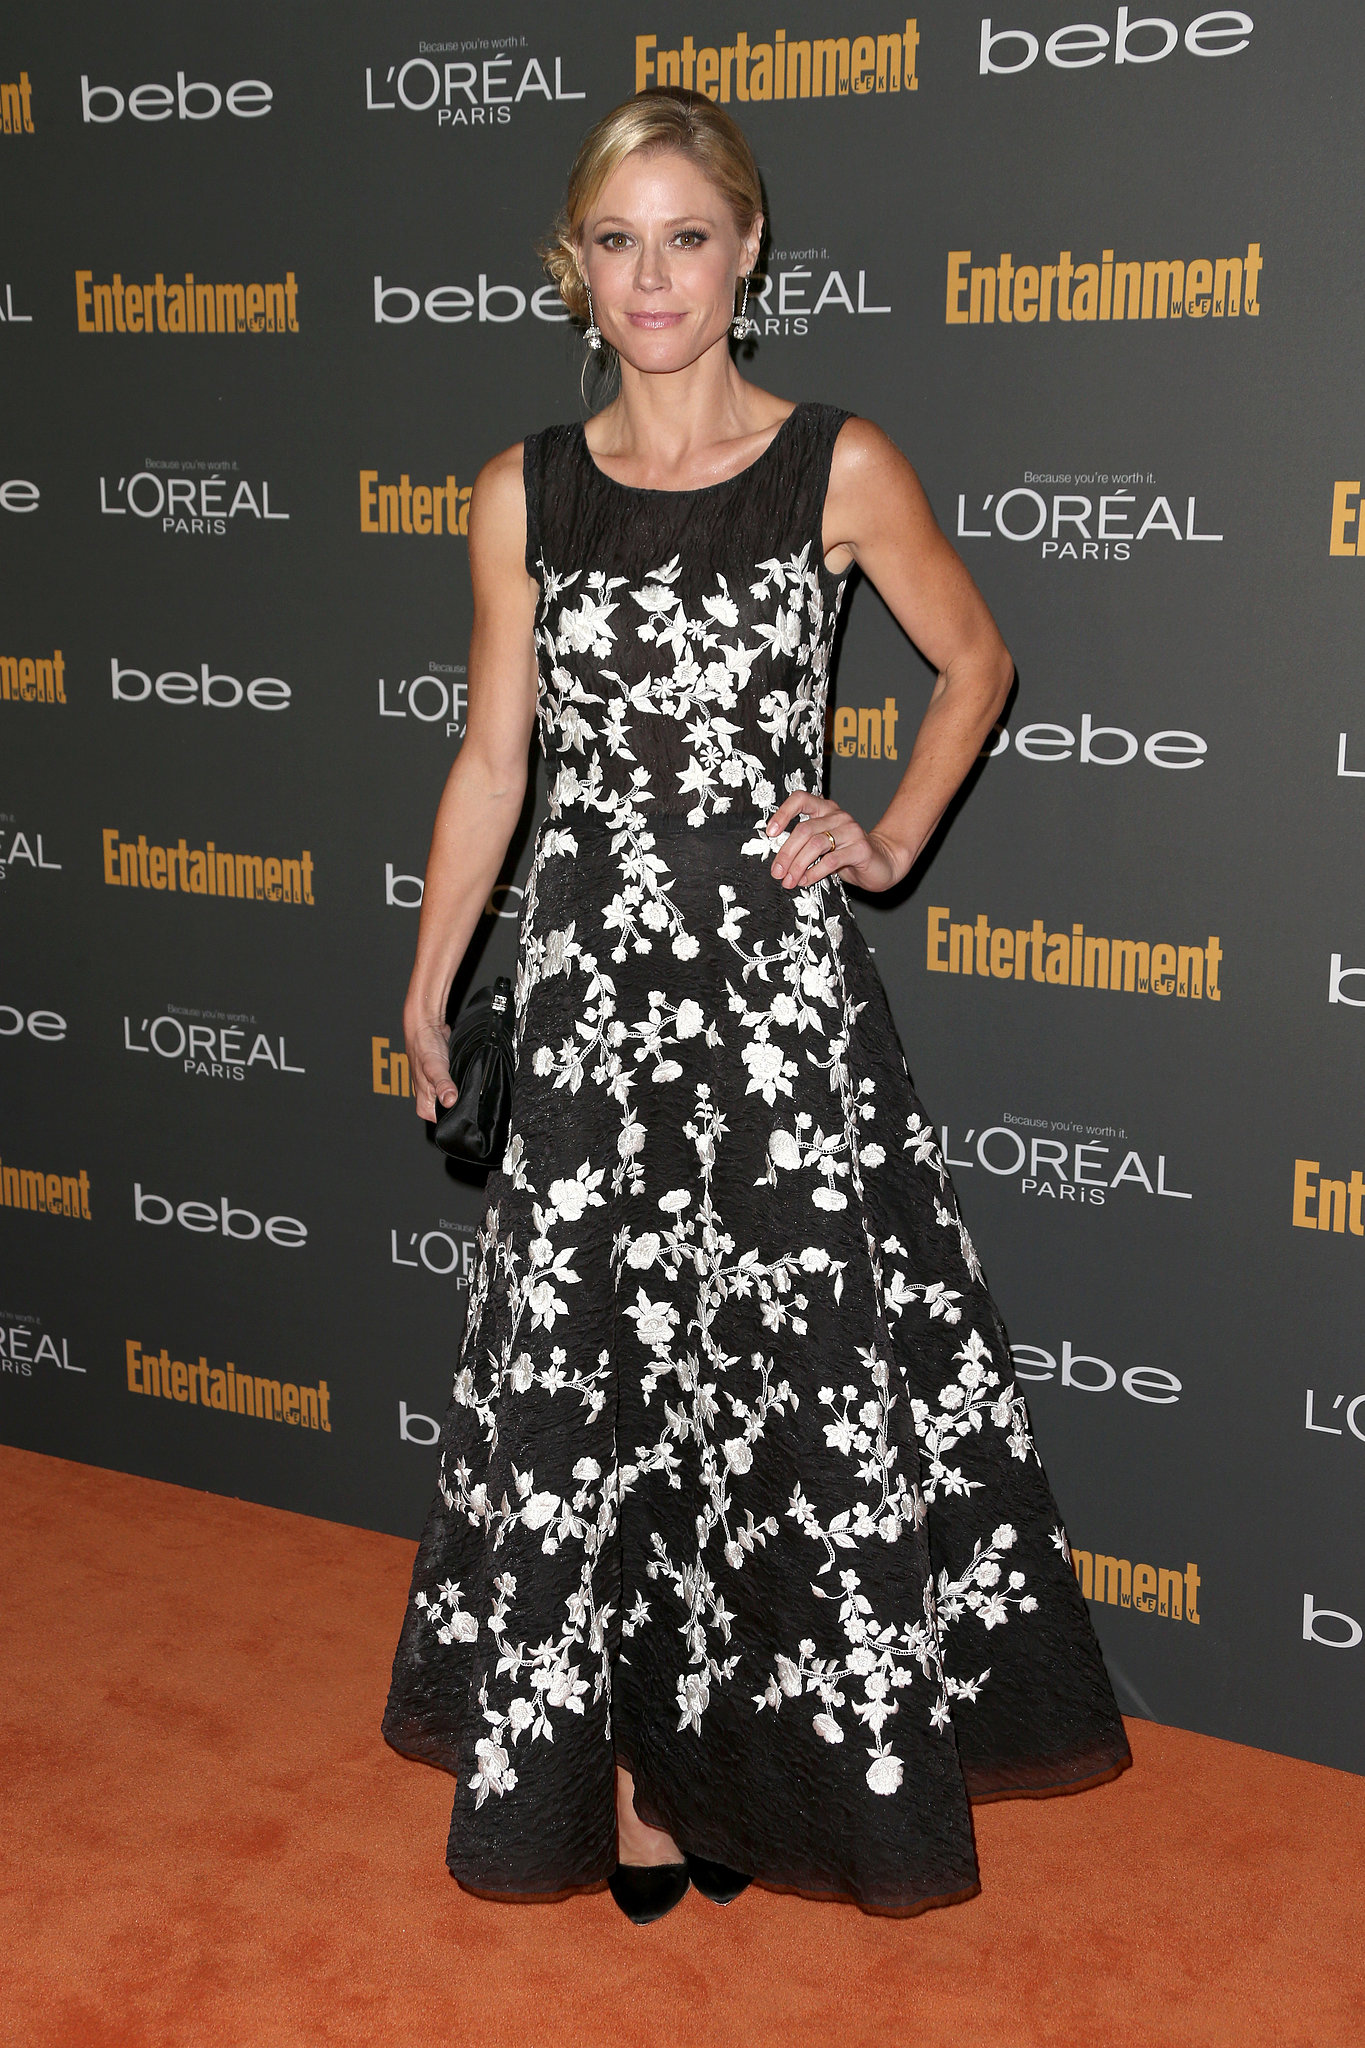 Julie Bowen's black-and-whit